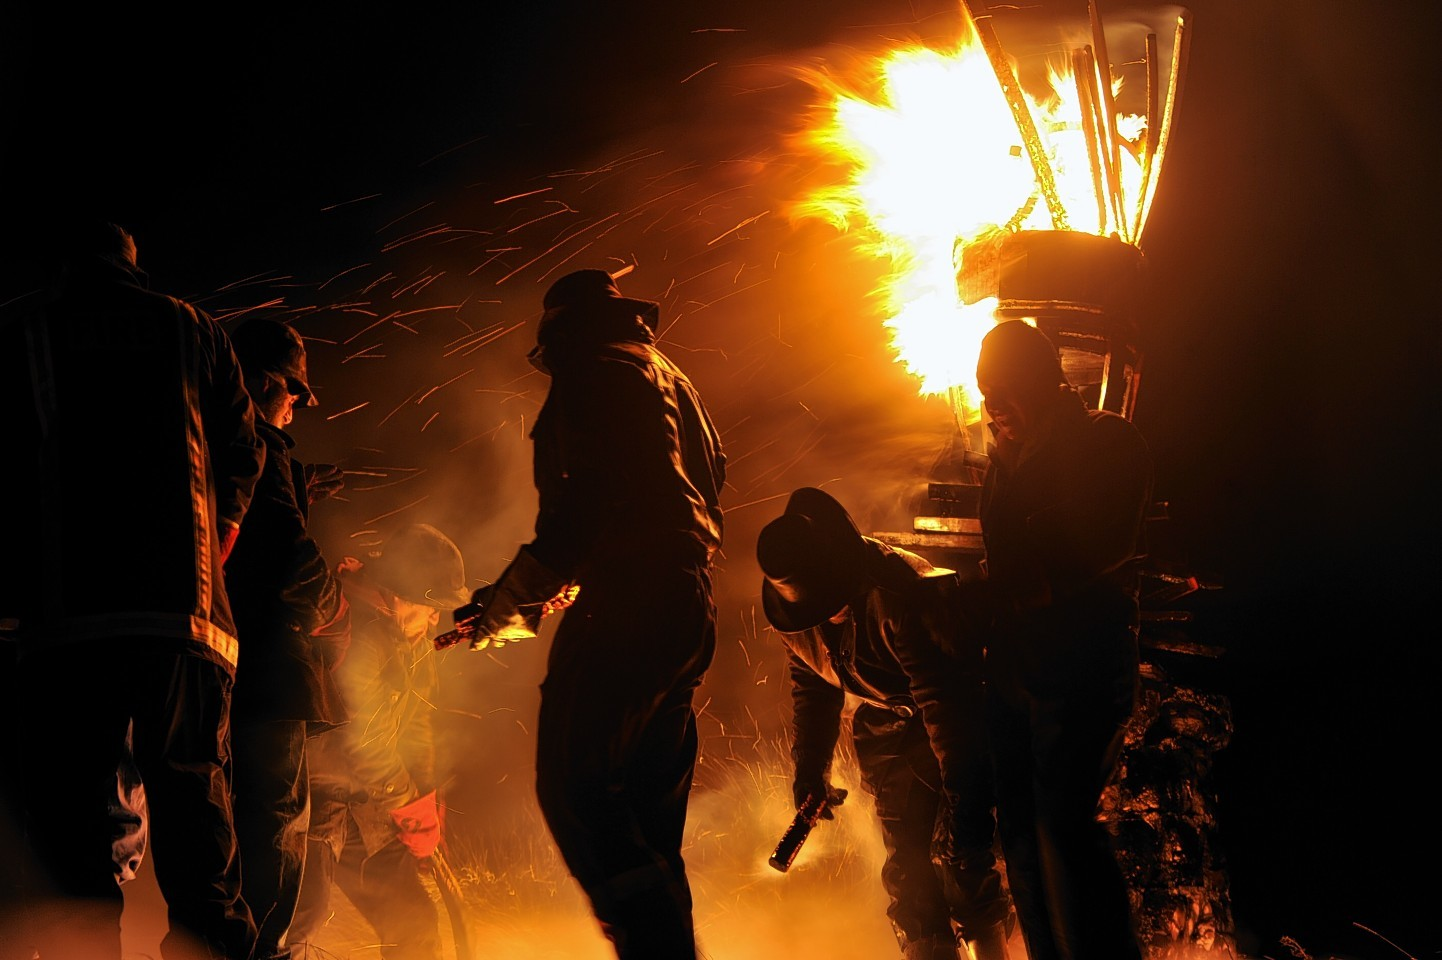 The Burning of the Clavie customarily takes place every January 11